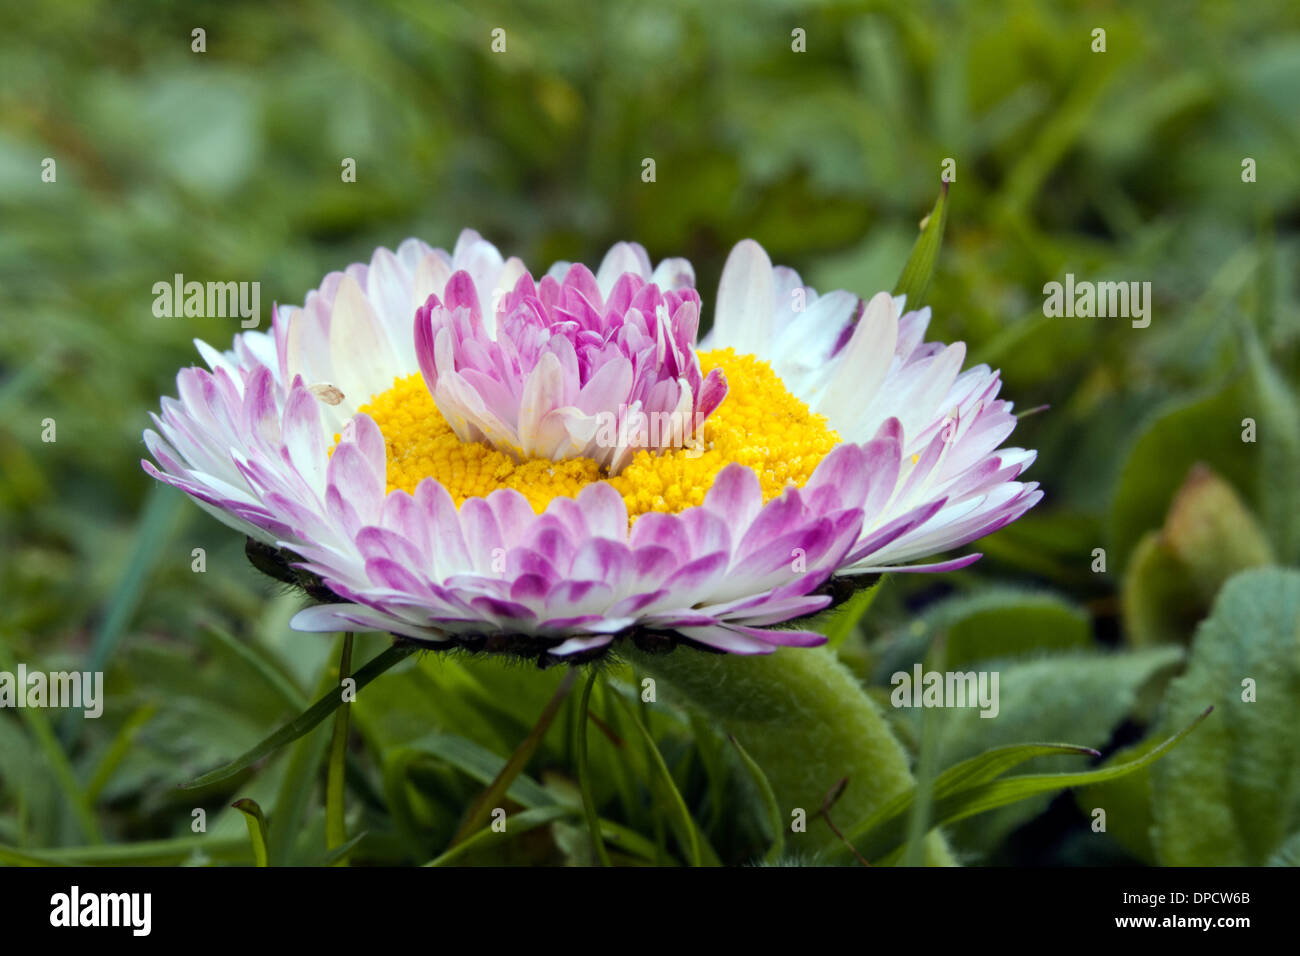 Double daisy stock photos double daisy stock images alamy an uncultivated double daisy growing in a lawn stock image izmirmasajfo